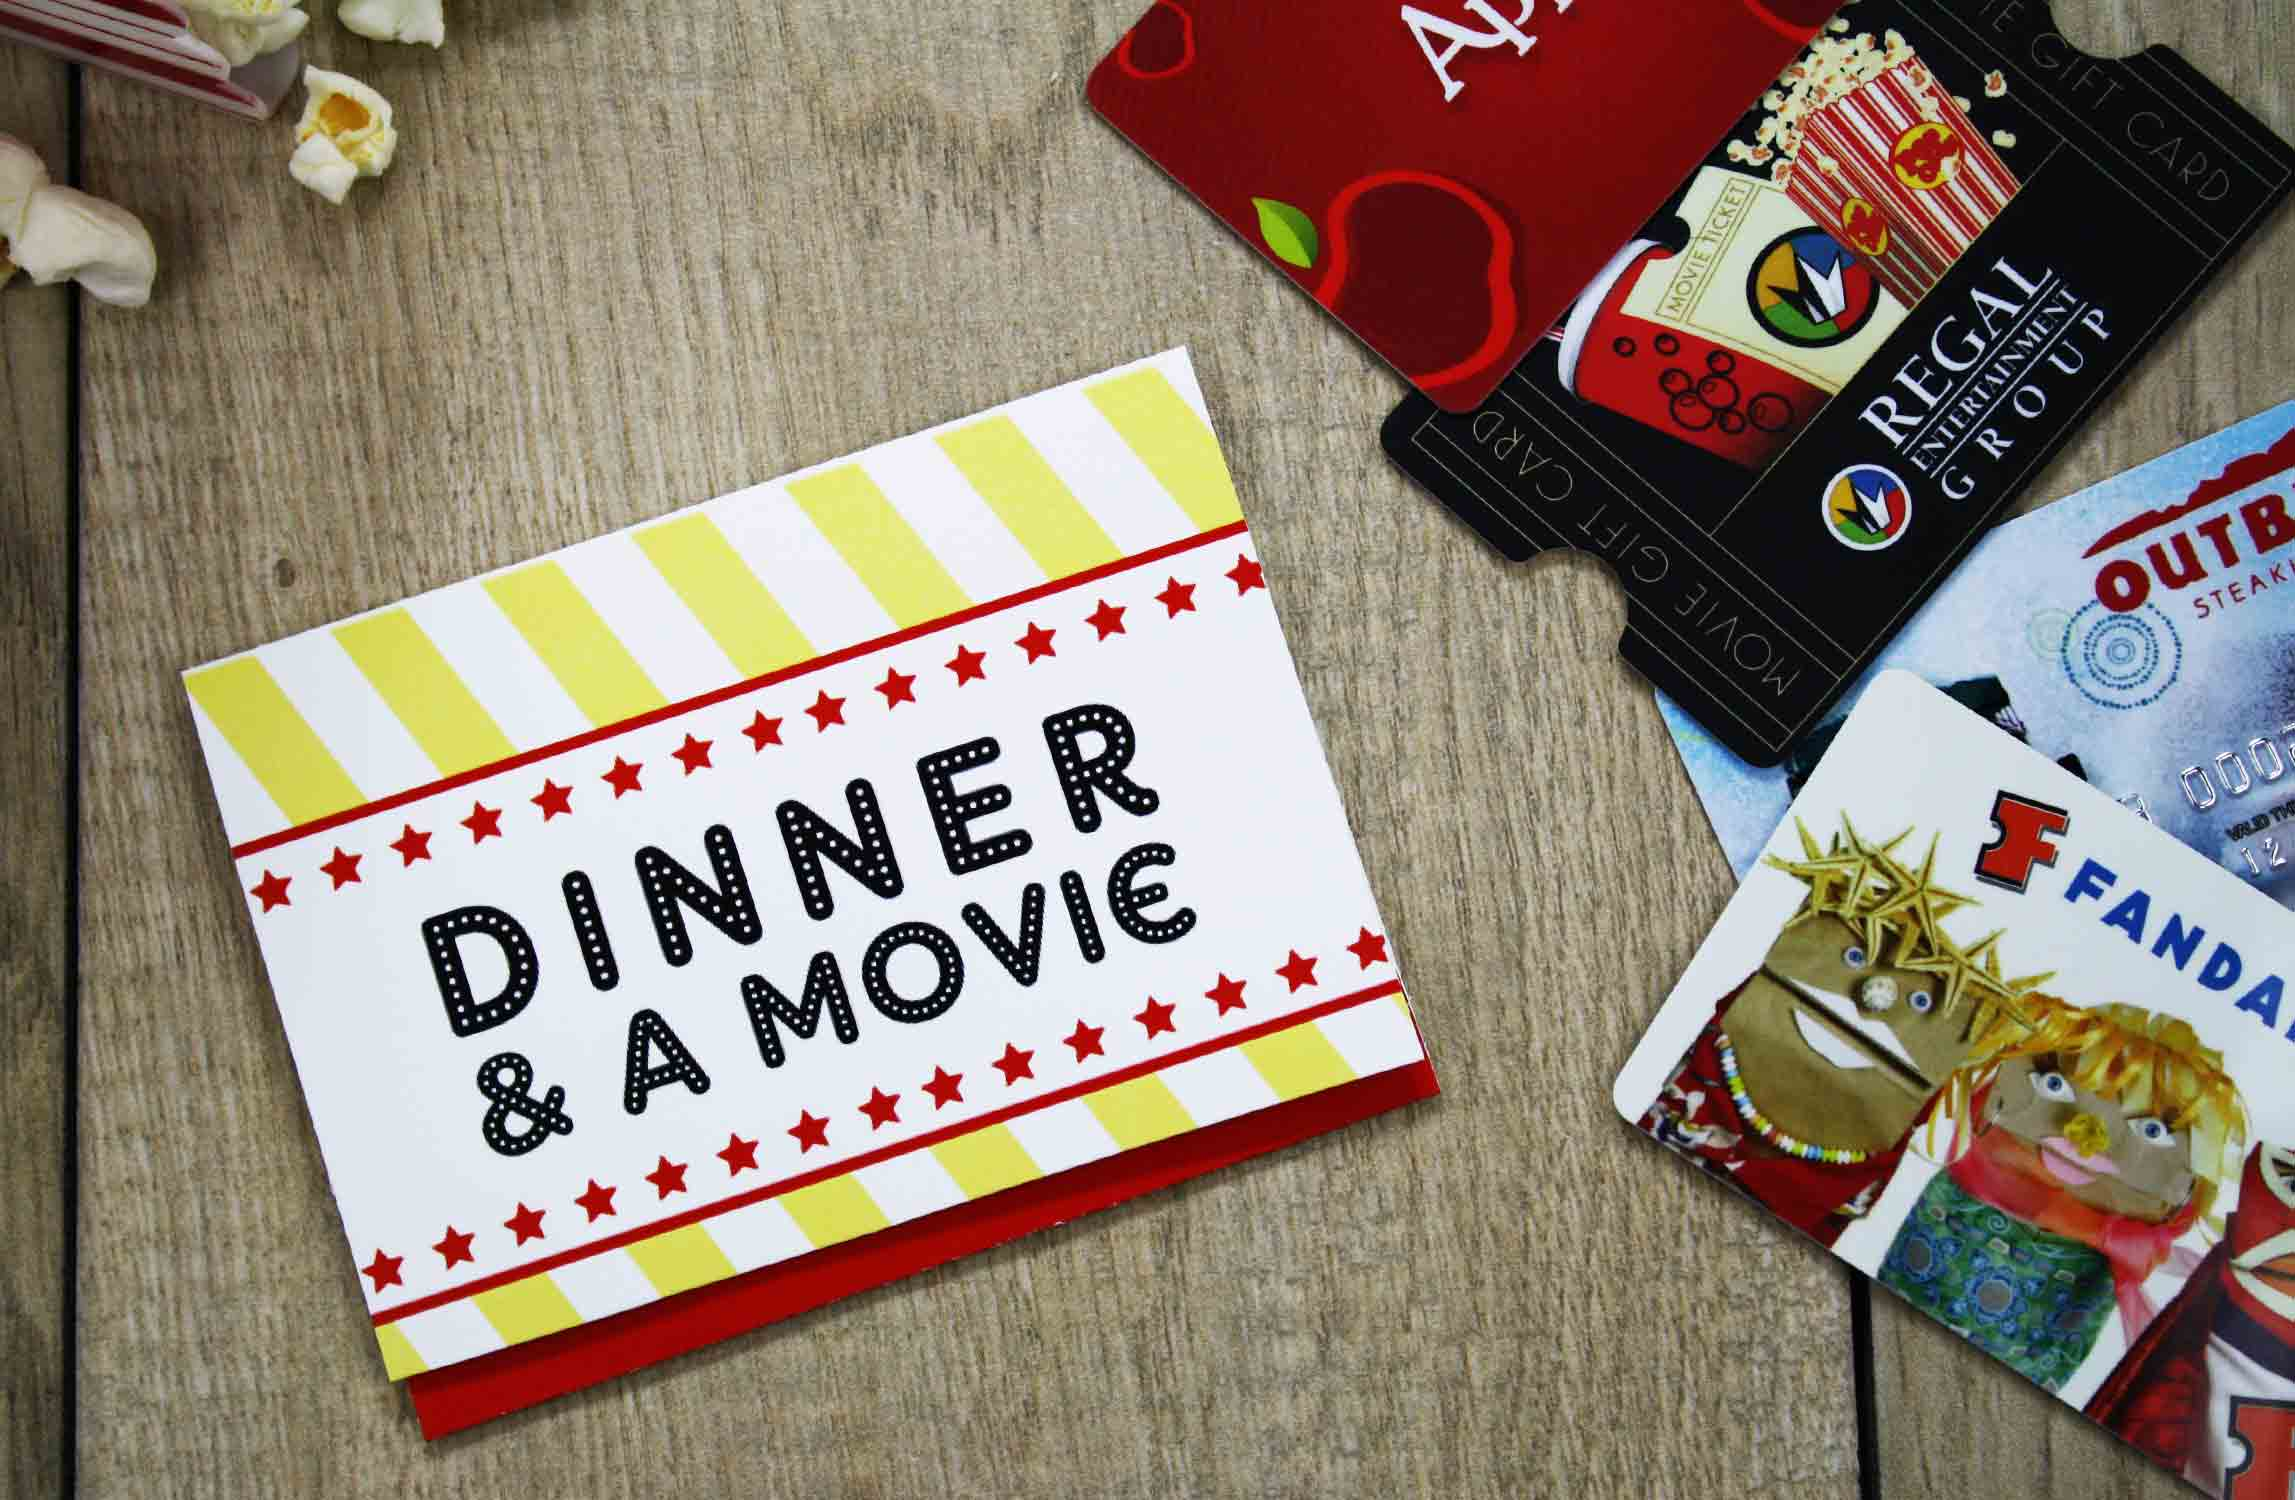 Dinner and a movie free printable gift card holder